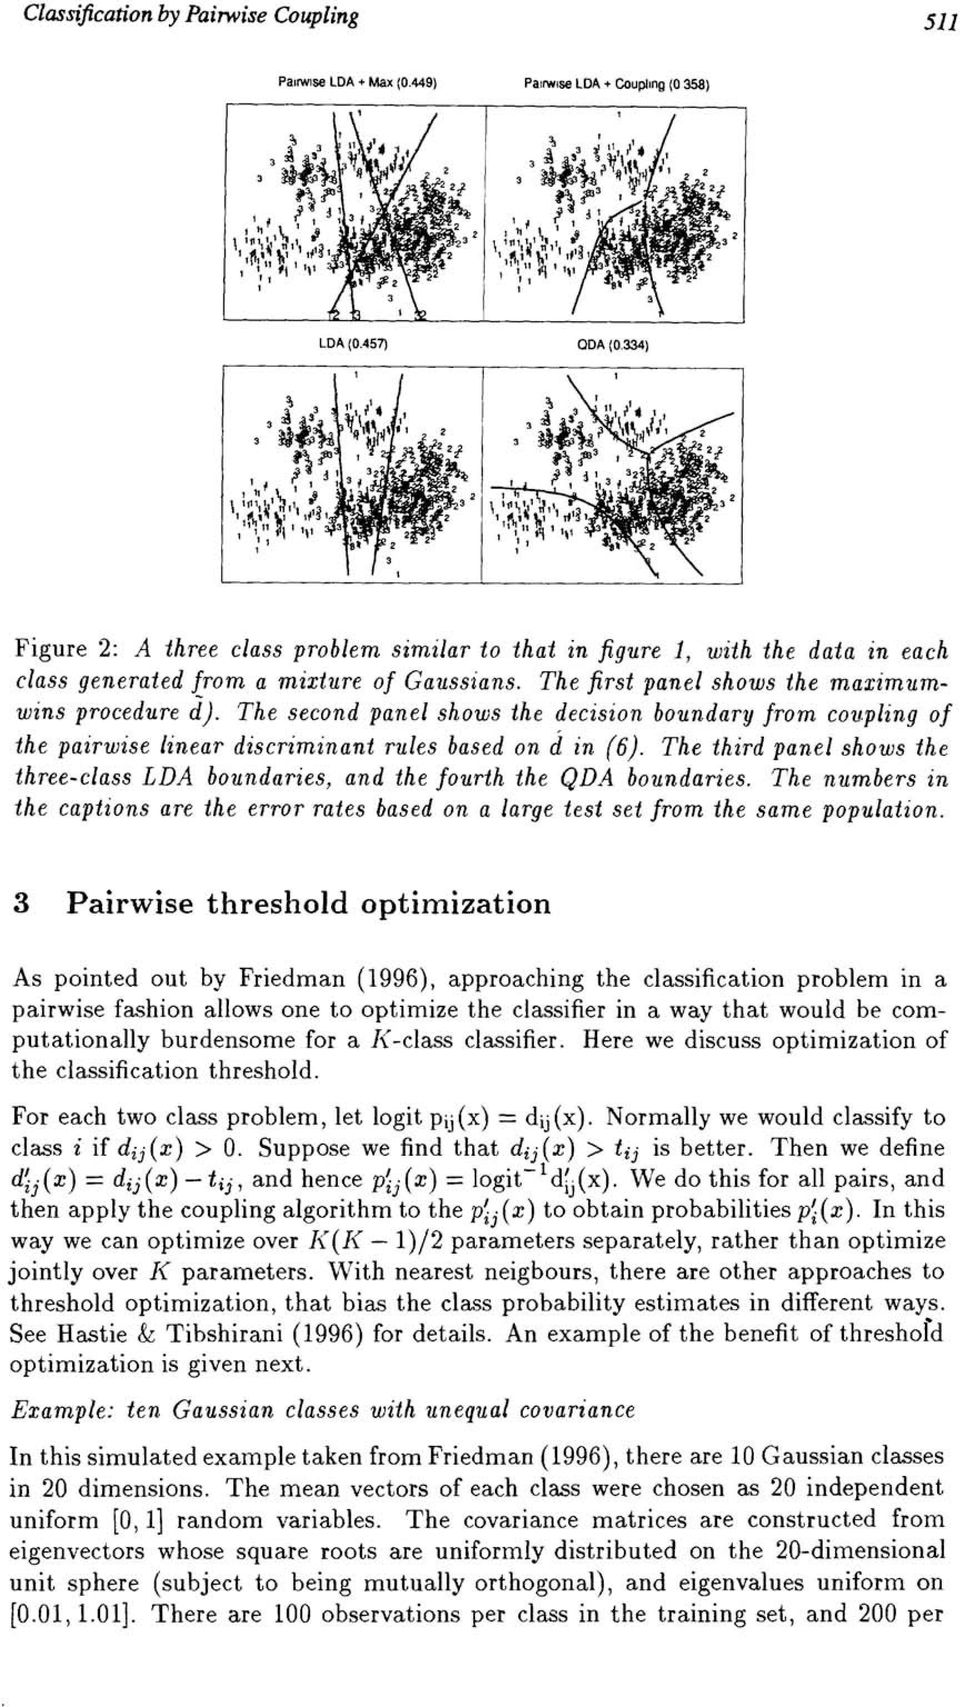 The second panel shows the decision boundary from coupling of the pairwise linear discriminant rules based on d in (6).